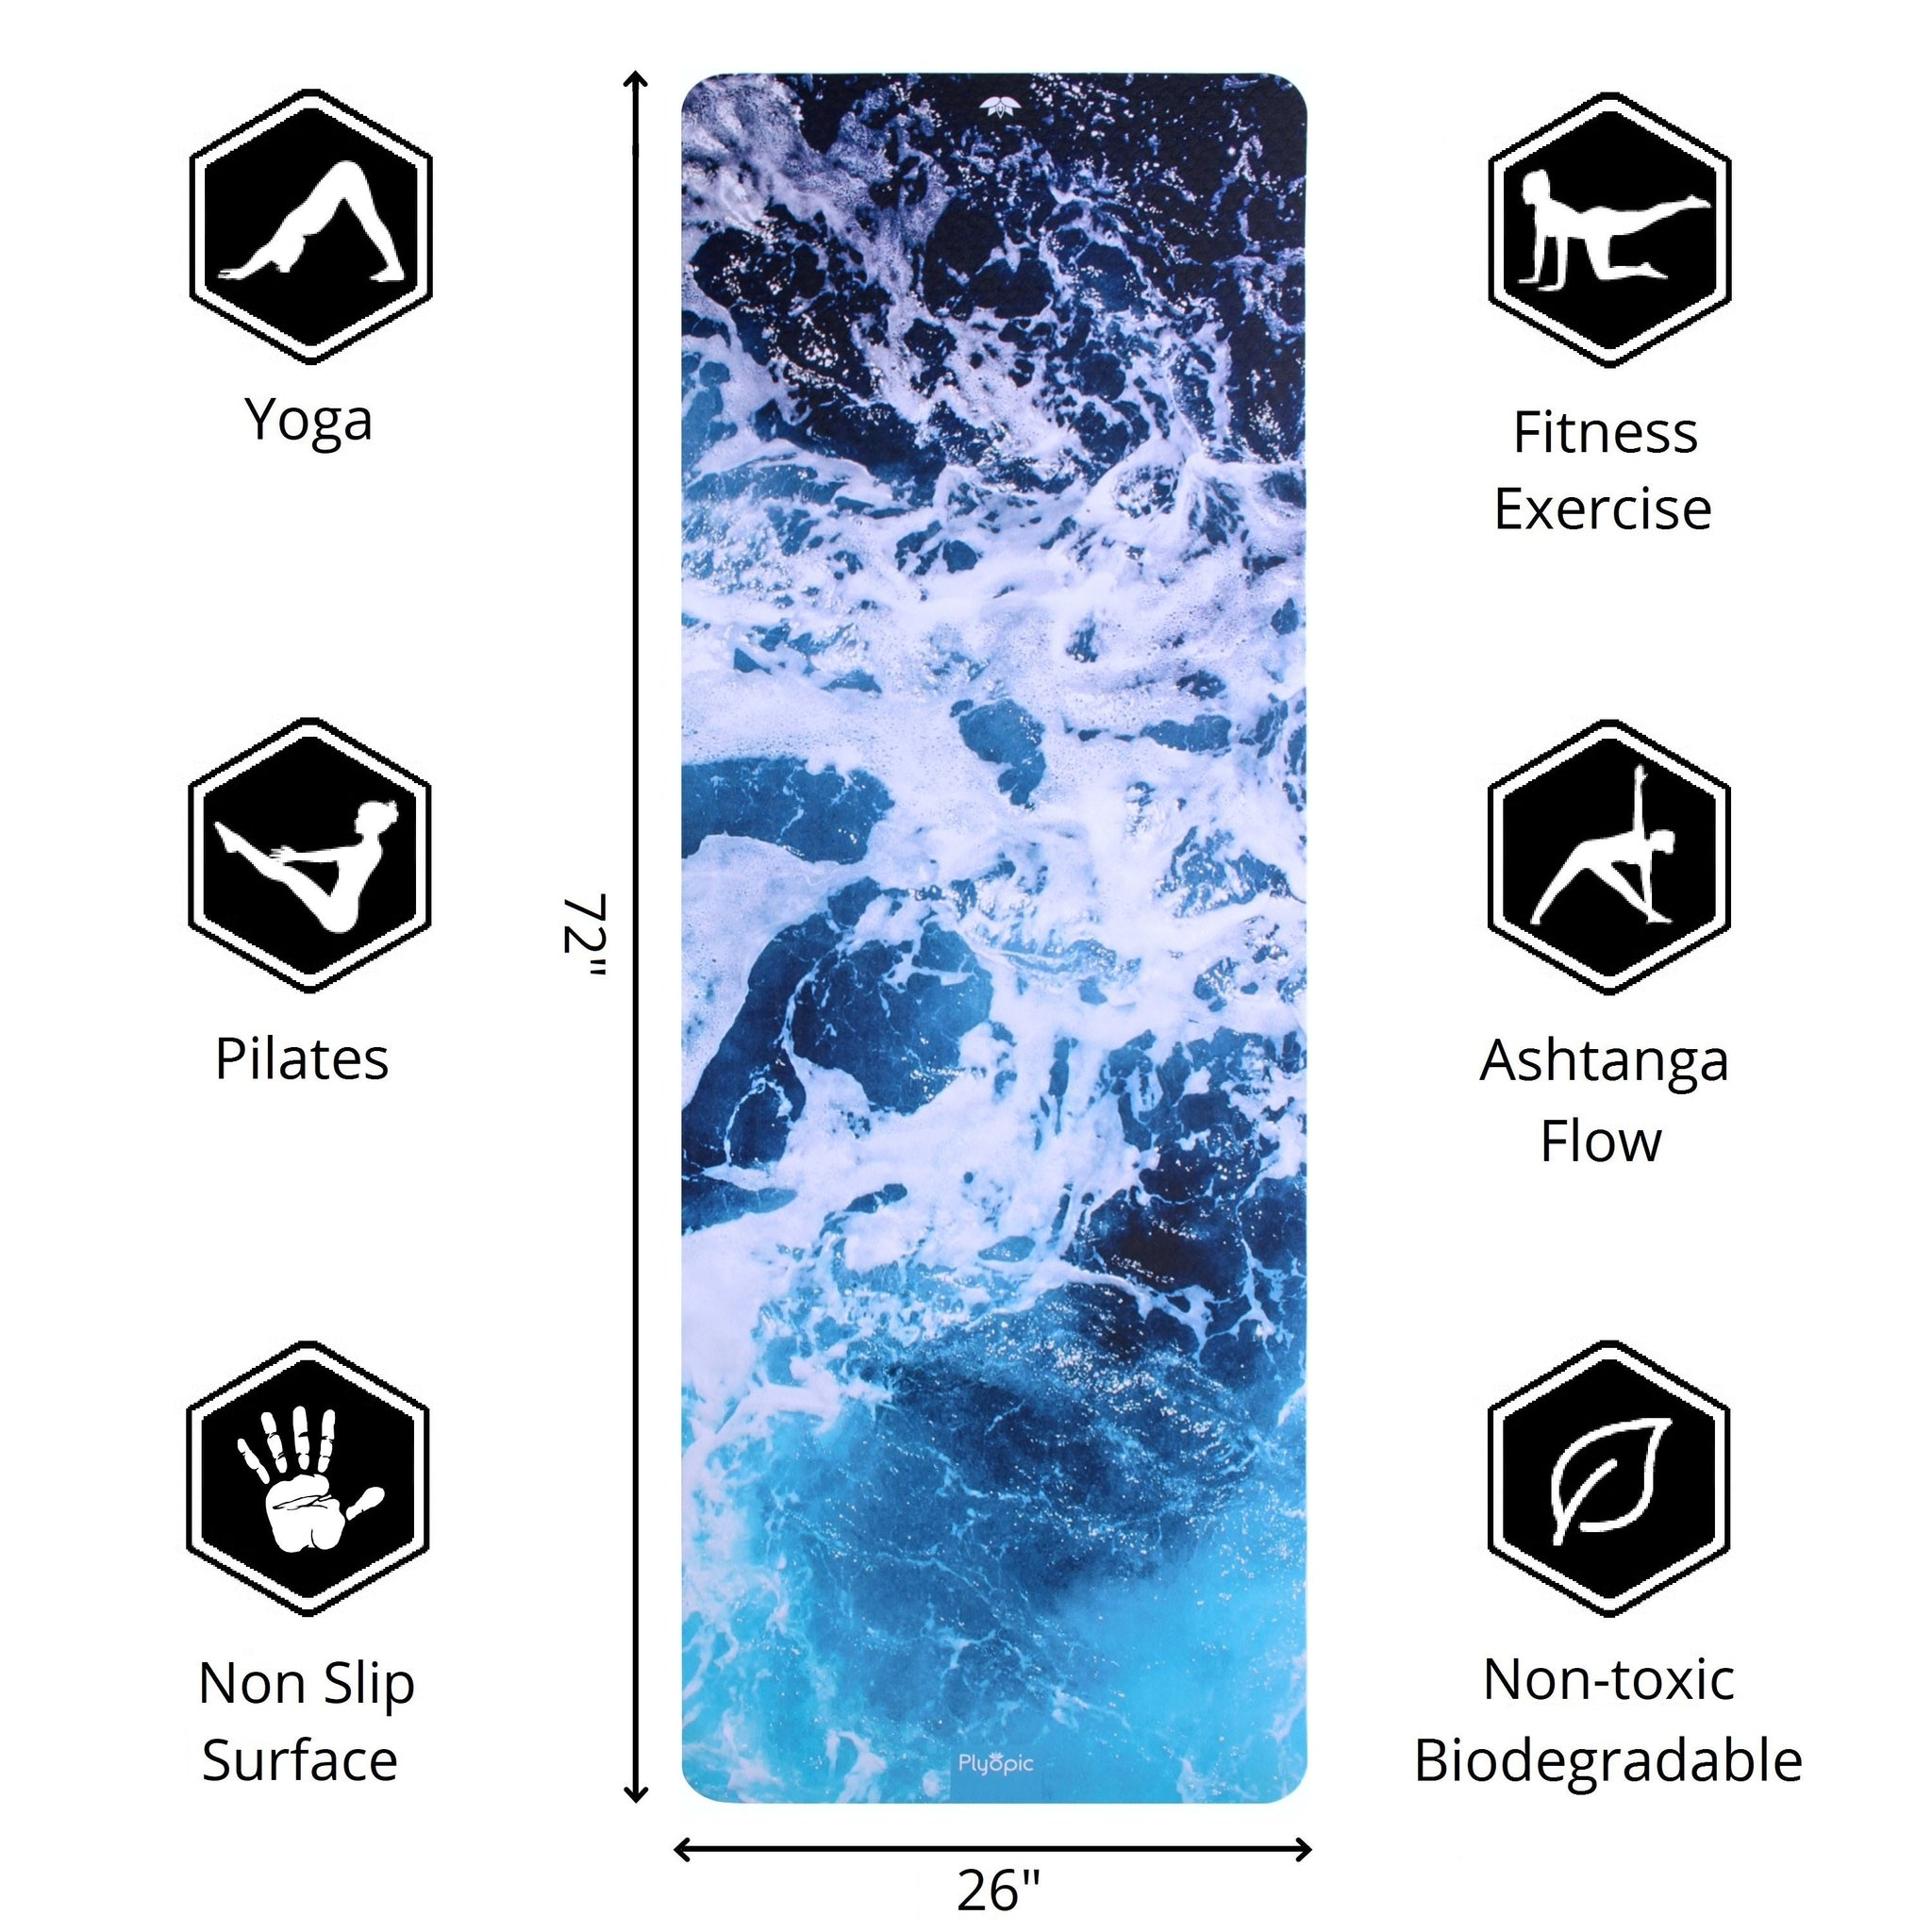 Plyopic-Printed Yoga, Pilates & Exercise Mat - Pacific 72inch x 26inch Yoga Mat